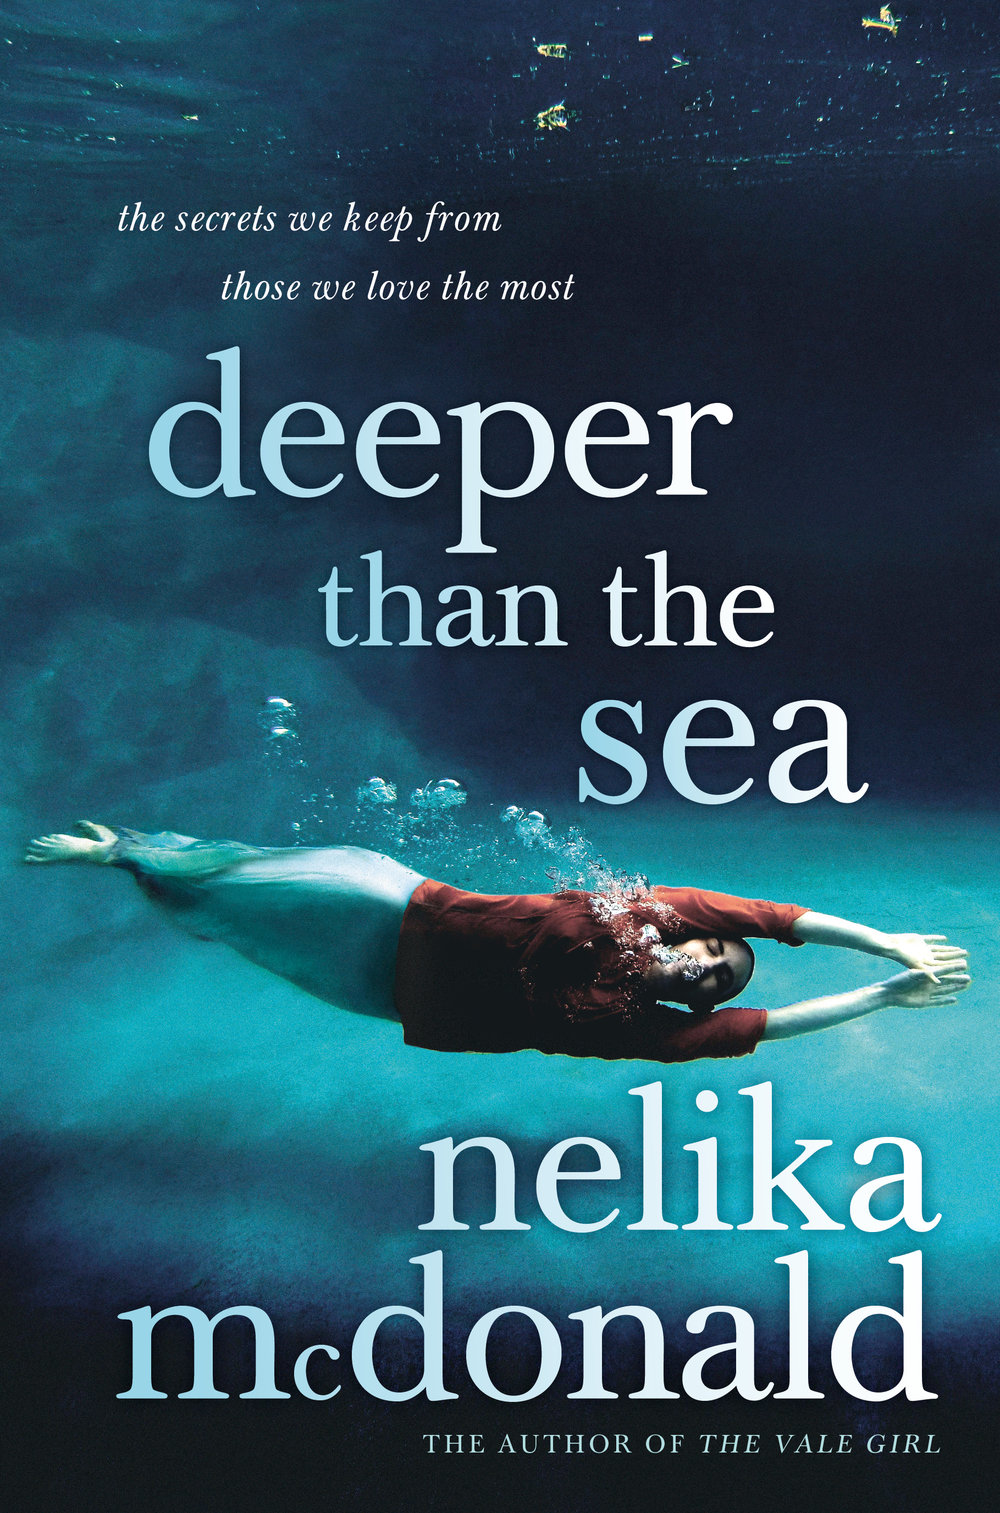 Deeper than the Sea - Pan Macmillan, 2017It's always been just Beth and her mother Theo. Until Beth is sixteen years old, and a stranger arrives in their small coastal town - a stranger with a claim that rips apart all Beth knows.What do you do when everything you thought you knew about yourself is based on a lie?In a deeply affecting story that challenges our notions of maternal love, Nelika McDonald examines the myriad ways that love is forged and tempered over years and how fiercely it is defended. Review: Sydney Morning Herald, August 24, 2017